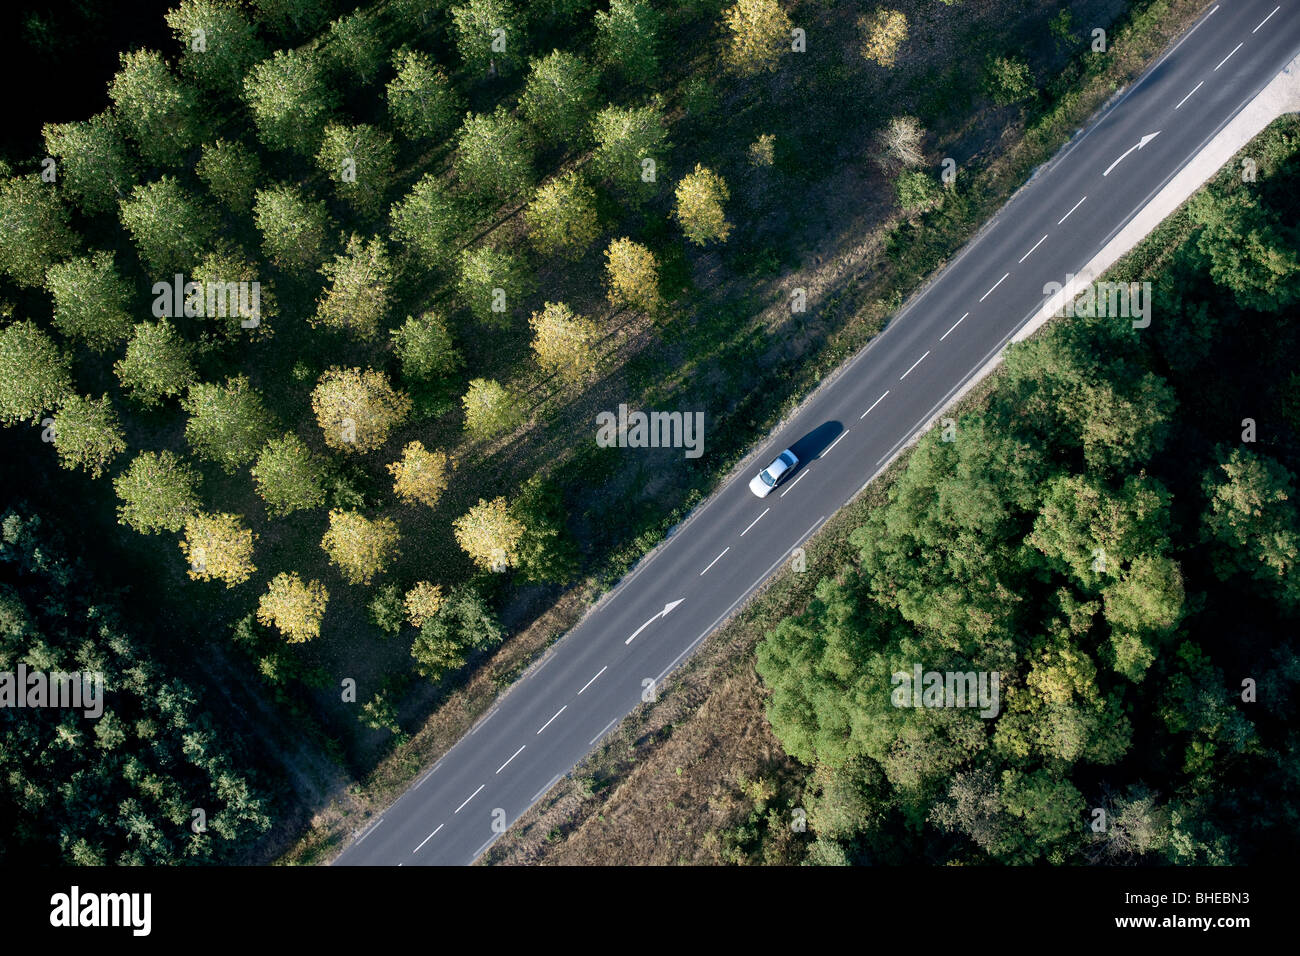 High angle view of car on road in France - Stock Image